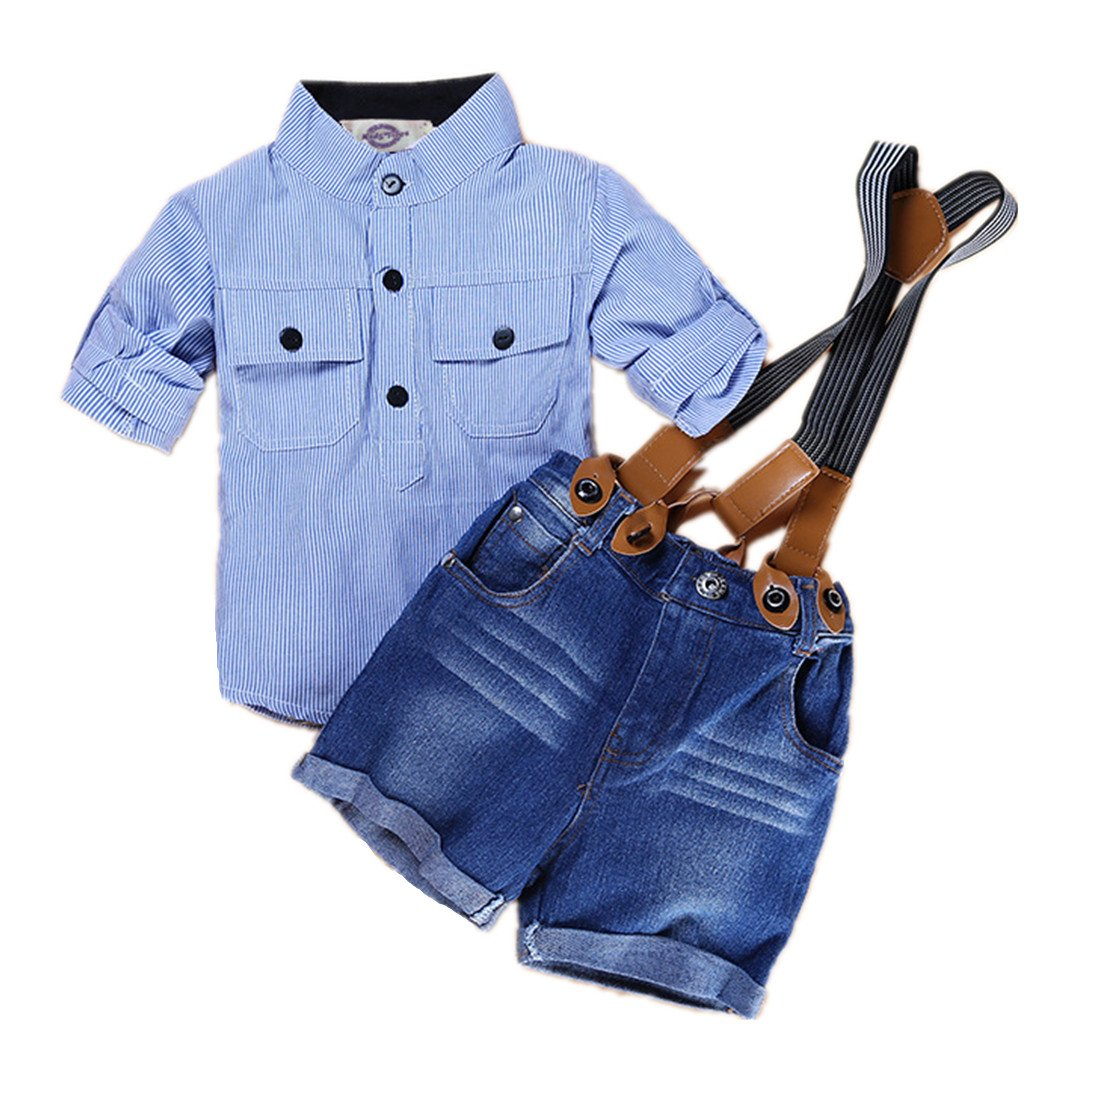 Amberetech Baby Boys Suspender Shorts Set Denim Overalls Outfit Cotton Long Sleeve Blue Stripe Shirt Two-Piece Suits